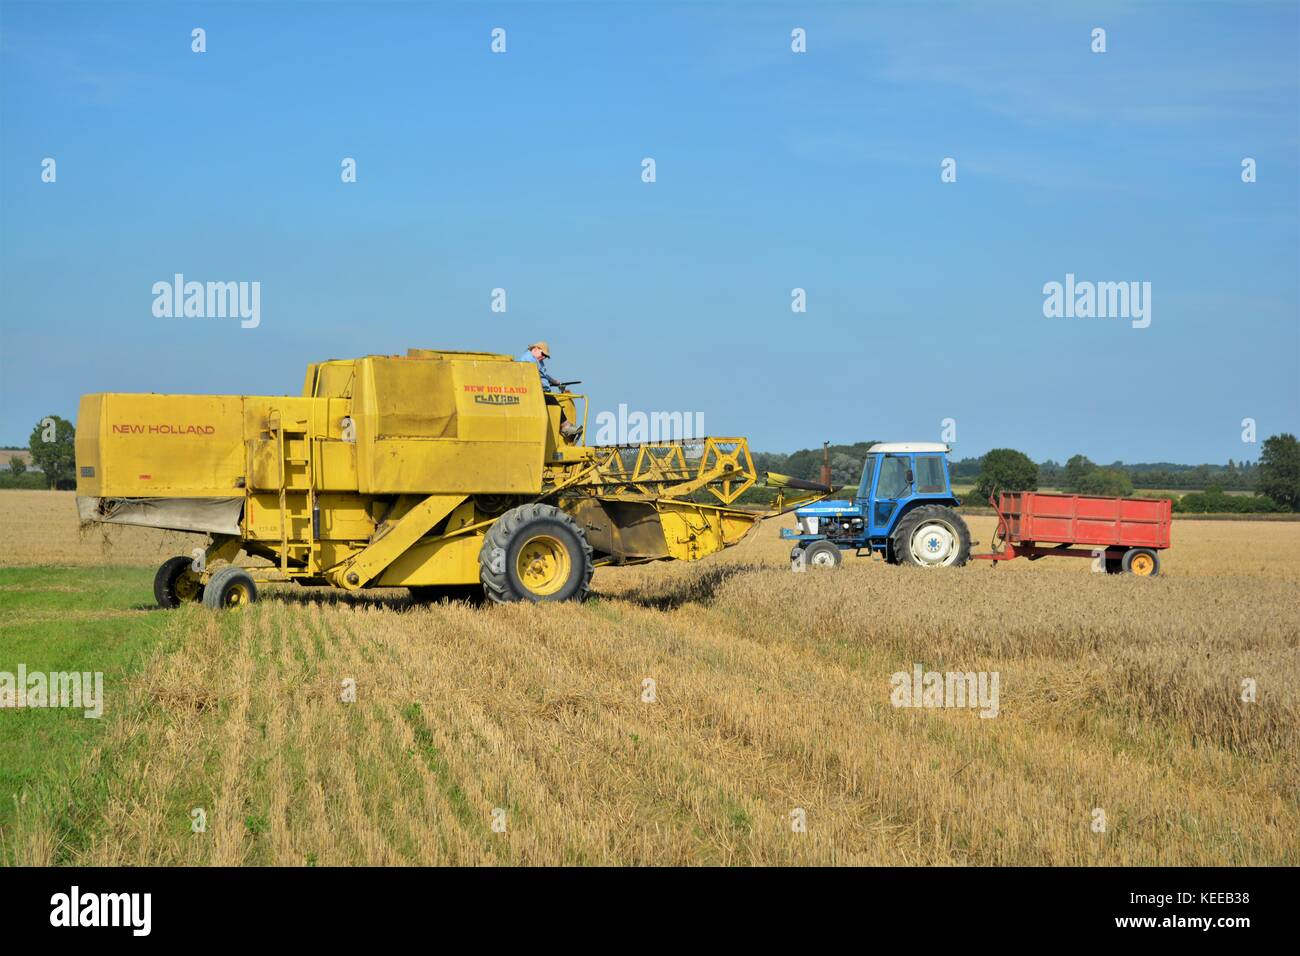 New Holland Combine Harvester Stock Photos & New Holland ...